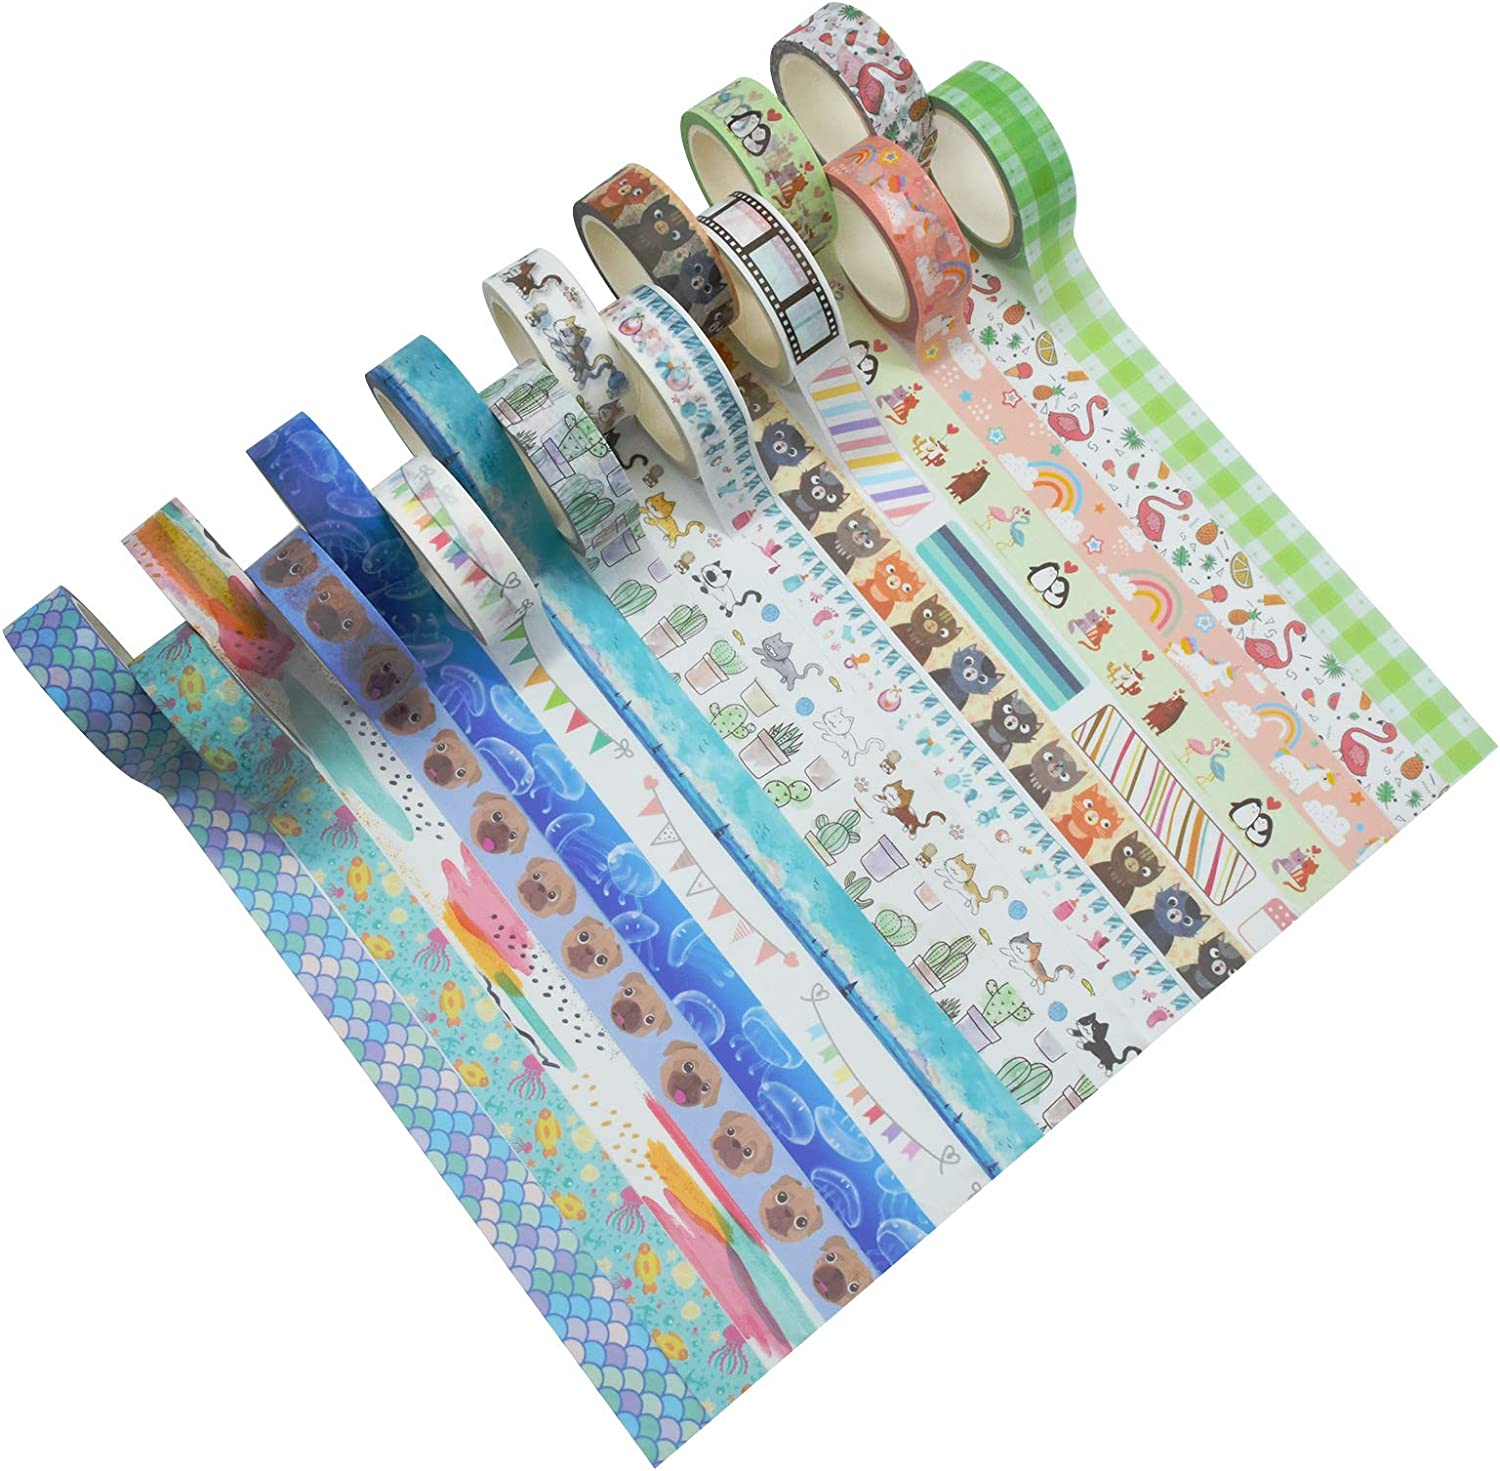 Animal Washi Tape Set, Fodeuxp 16 Rolls 15mm Wide 7 Meters Long Cute Decorative Masking Tape for Scrapbooking, Bullet Journals, Planners, DIY Crafts Arts : Office Products